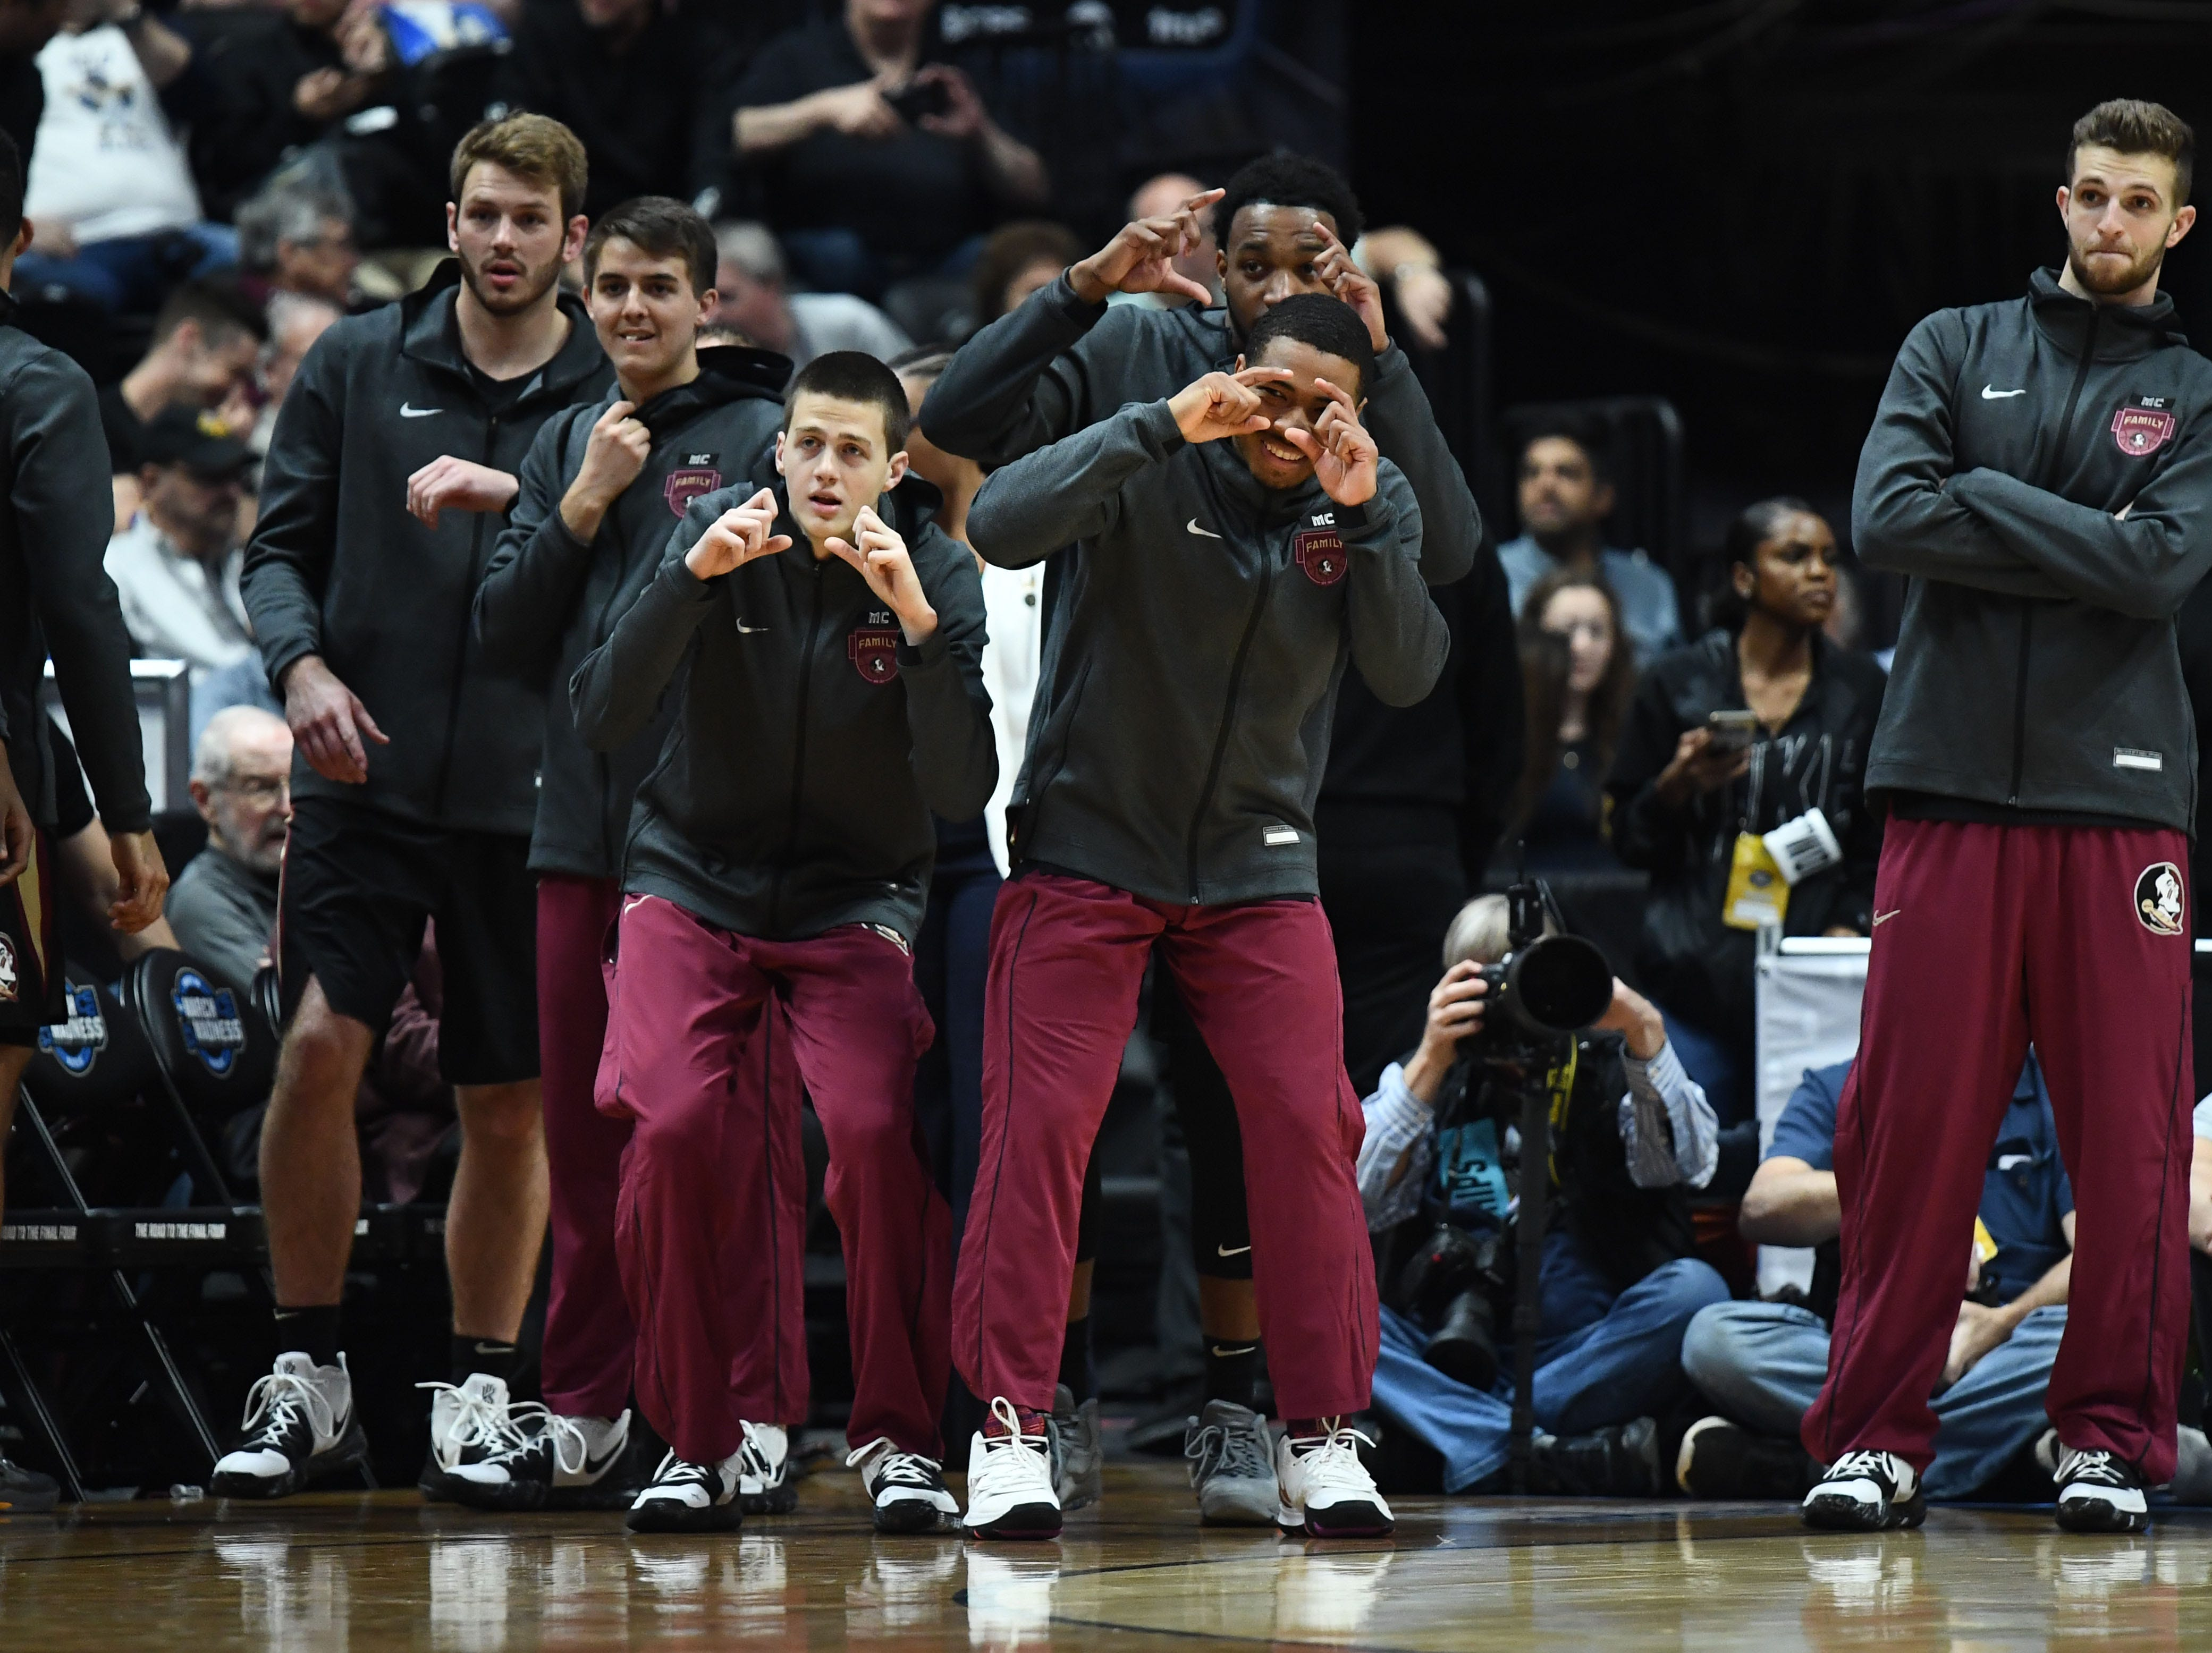 March 28, 2019; Anaheim, CA, USA; Florida State Seminoles during introductions before playing Gonzaga Bulldogs  in the semifinals of the west regional of the 2019 NCAA Tournament at Honda Center. Mandatory Credit: Robert Hanashiro-USA TODAY Sports